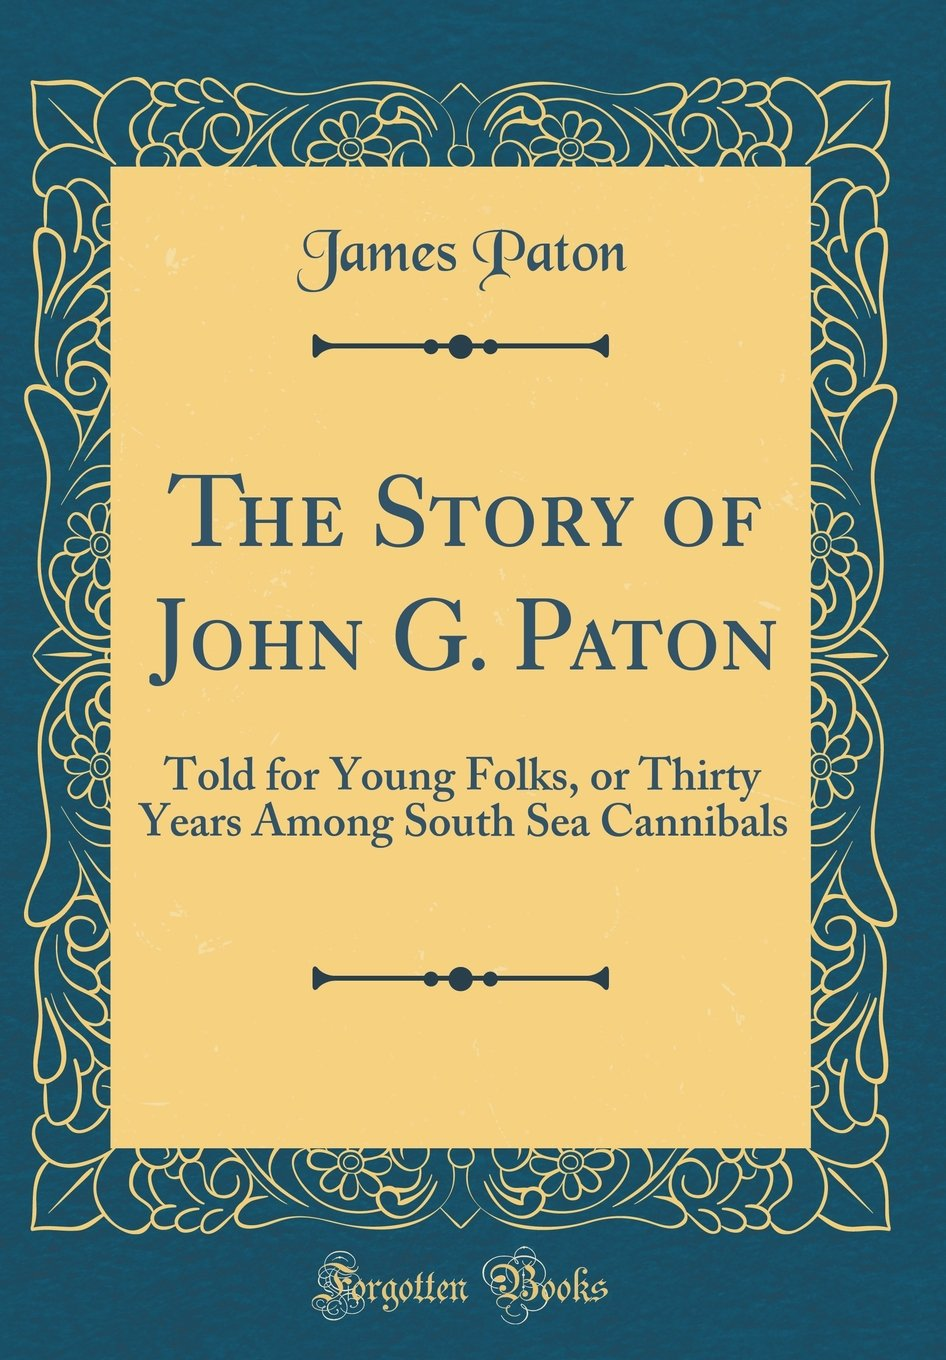 Download The Story of John G. Paton: Told for Young Folks, or Thirty Years Among South Sea Cannibals (Classic Reprint) PDF